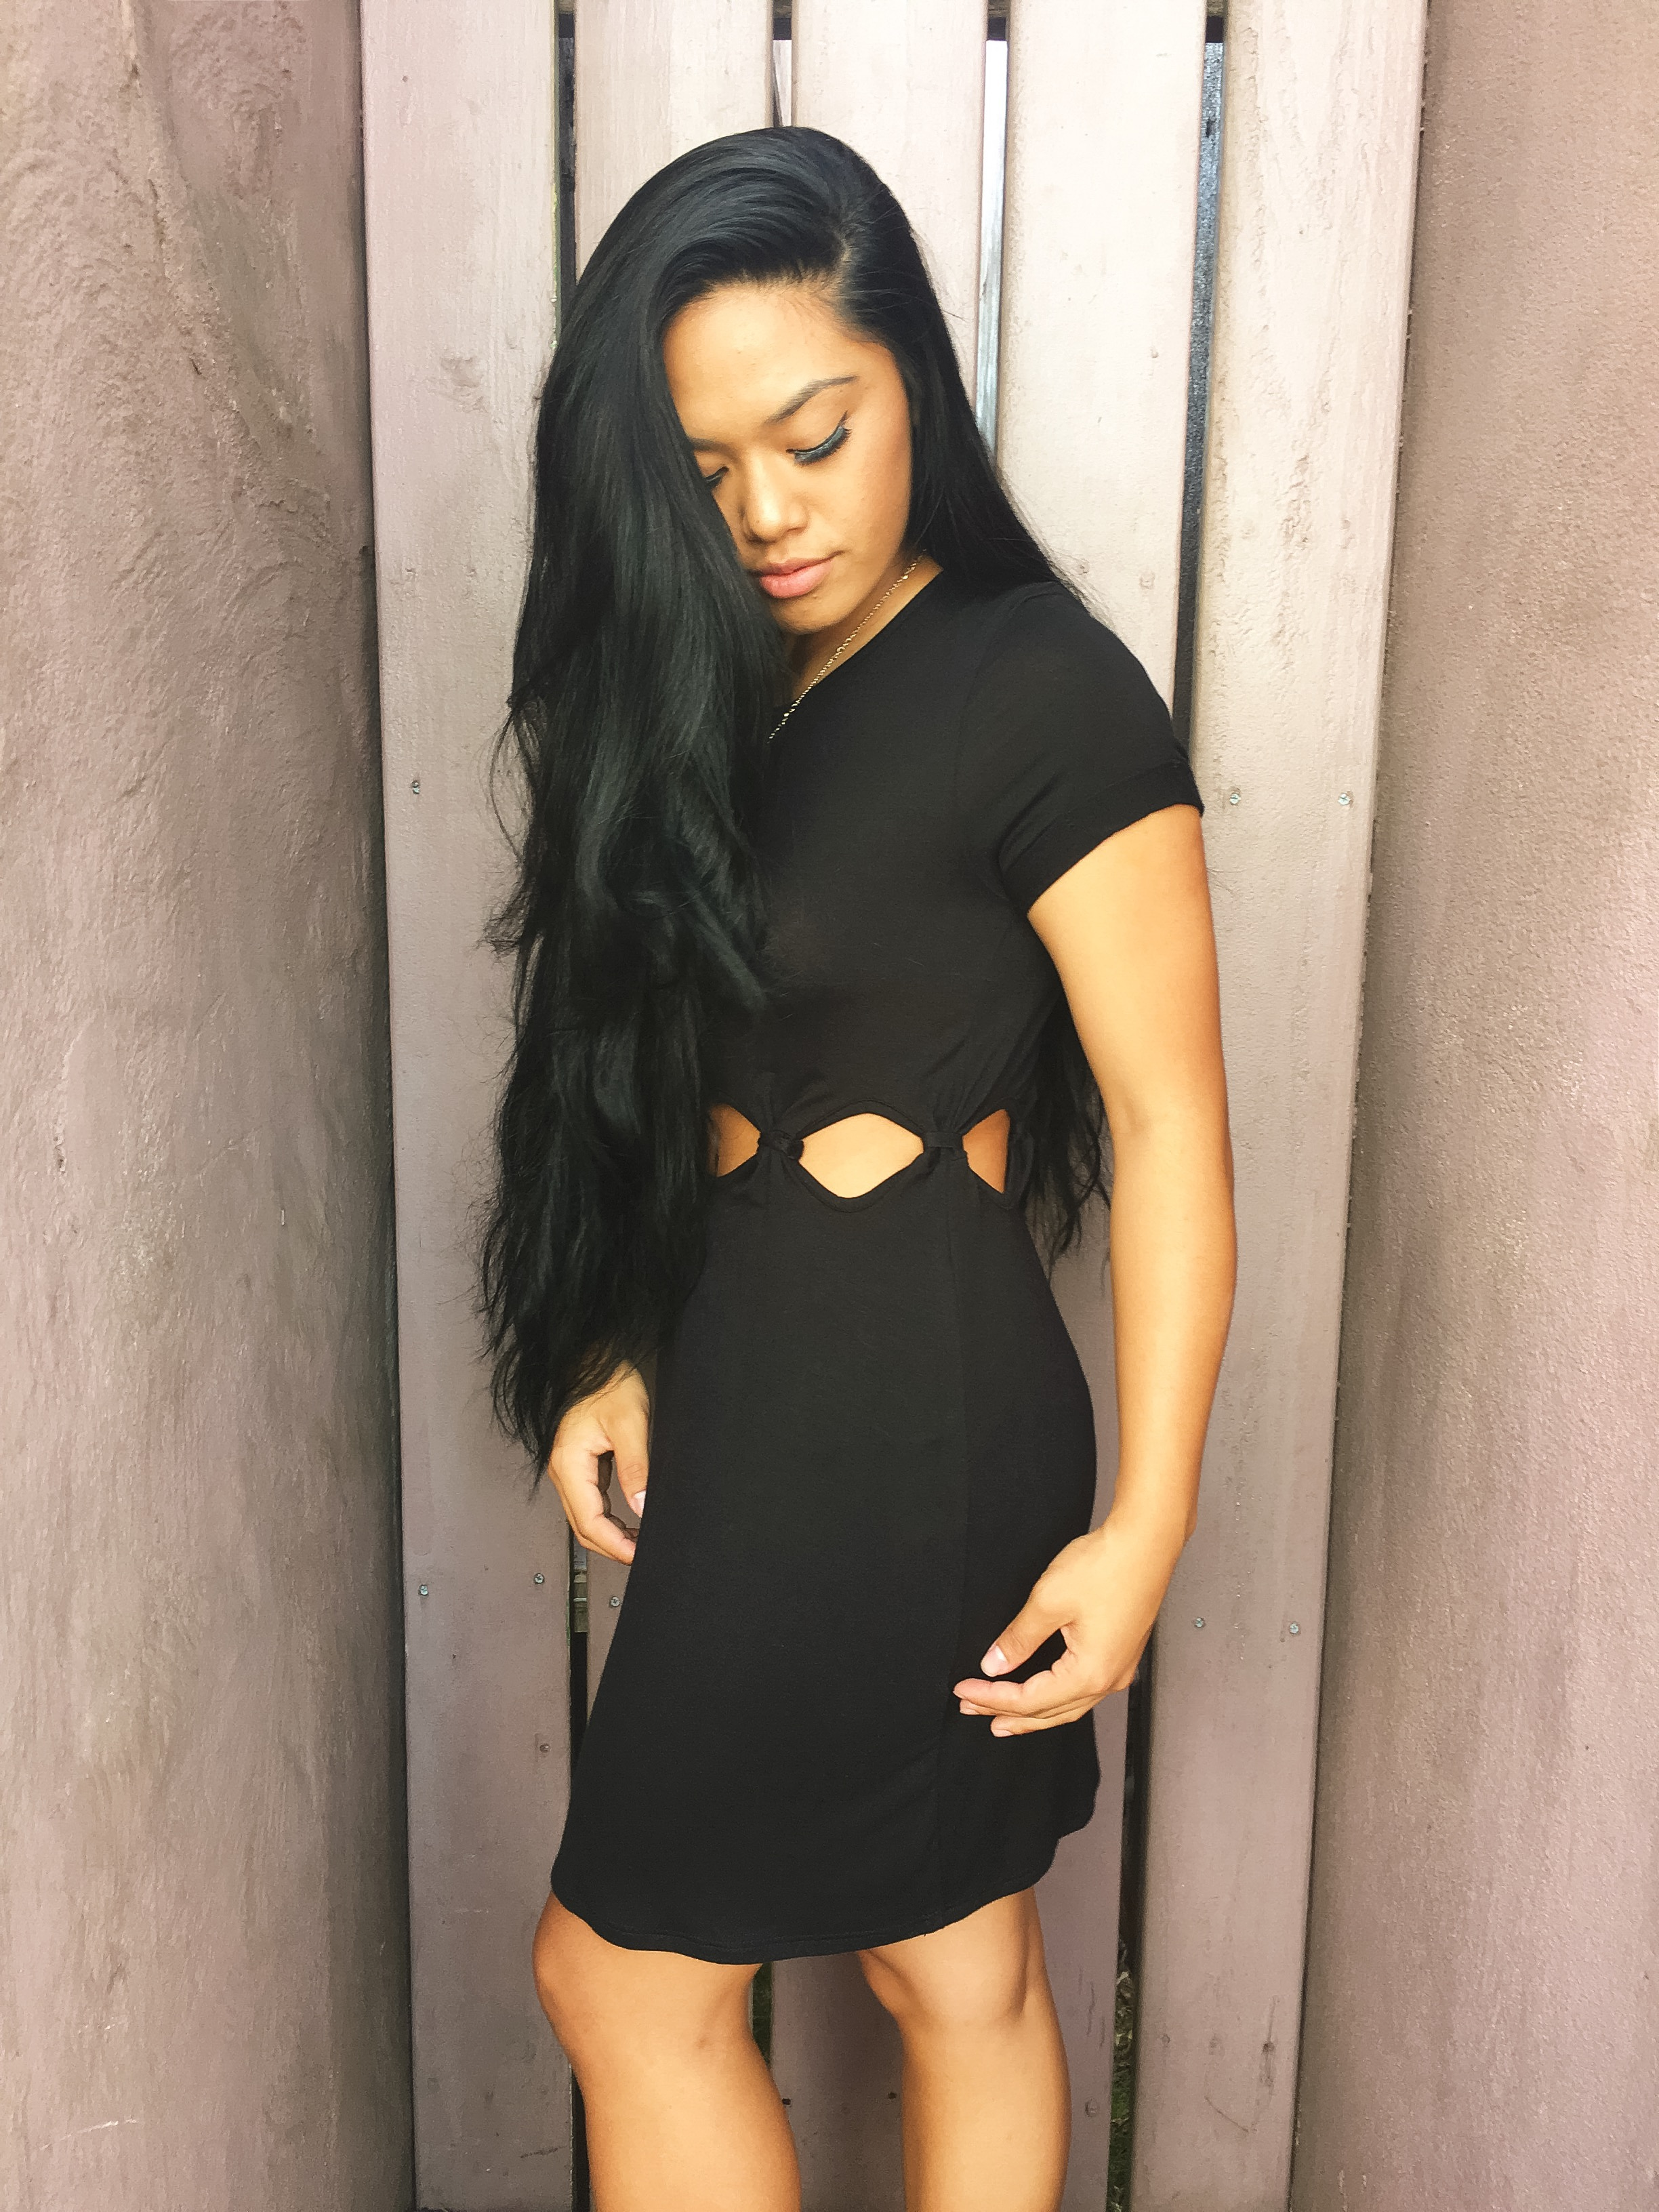 This LBD with the cutout detail, is also a comfortable t shirt style dress that can even be paired with leggings for a completely different look.